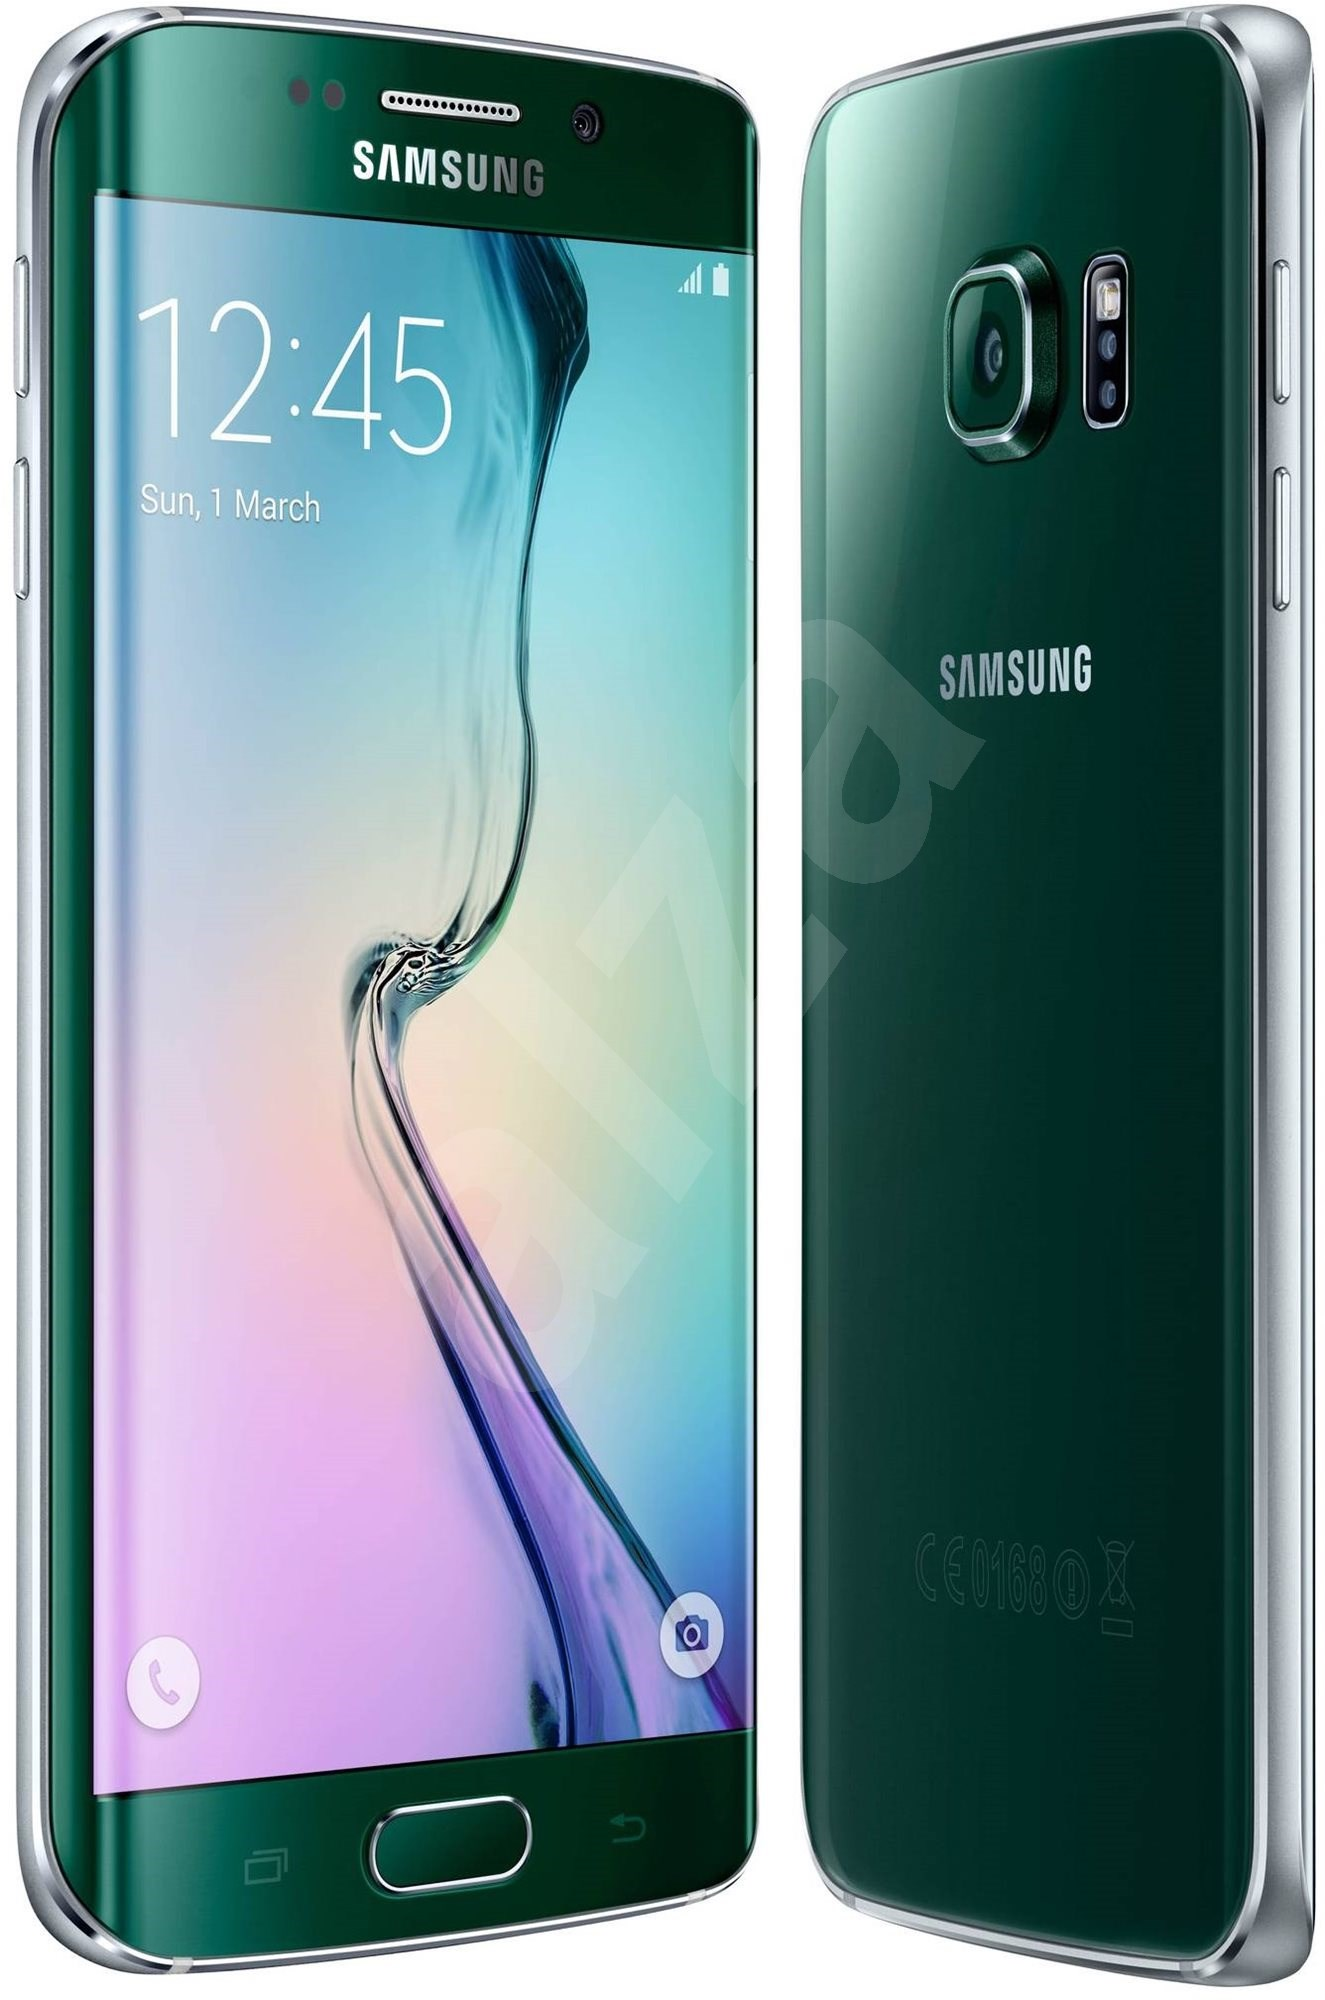 samsung galaxy s6 edge sm g925f 64gb green emerald. Black Bedroom Furniture Sets. Home Design Ideas